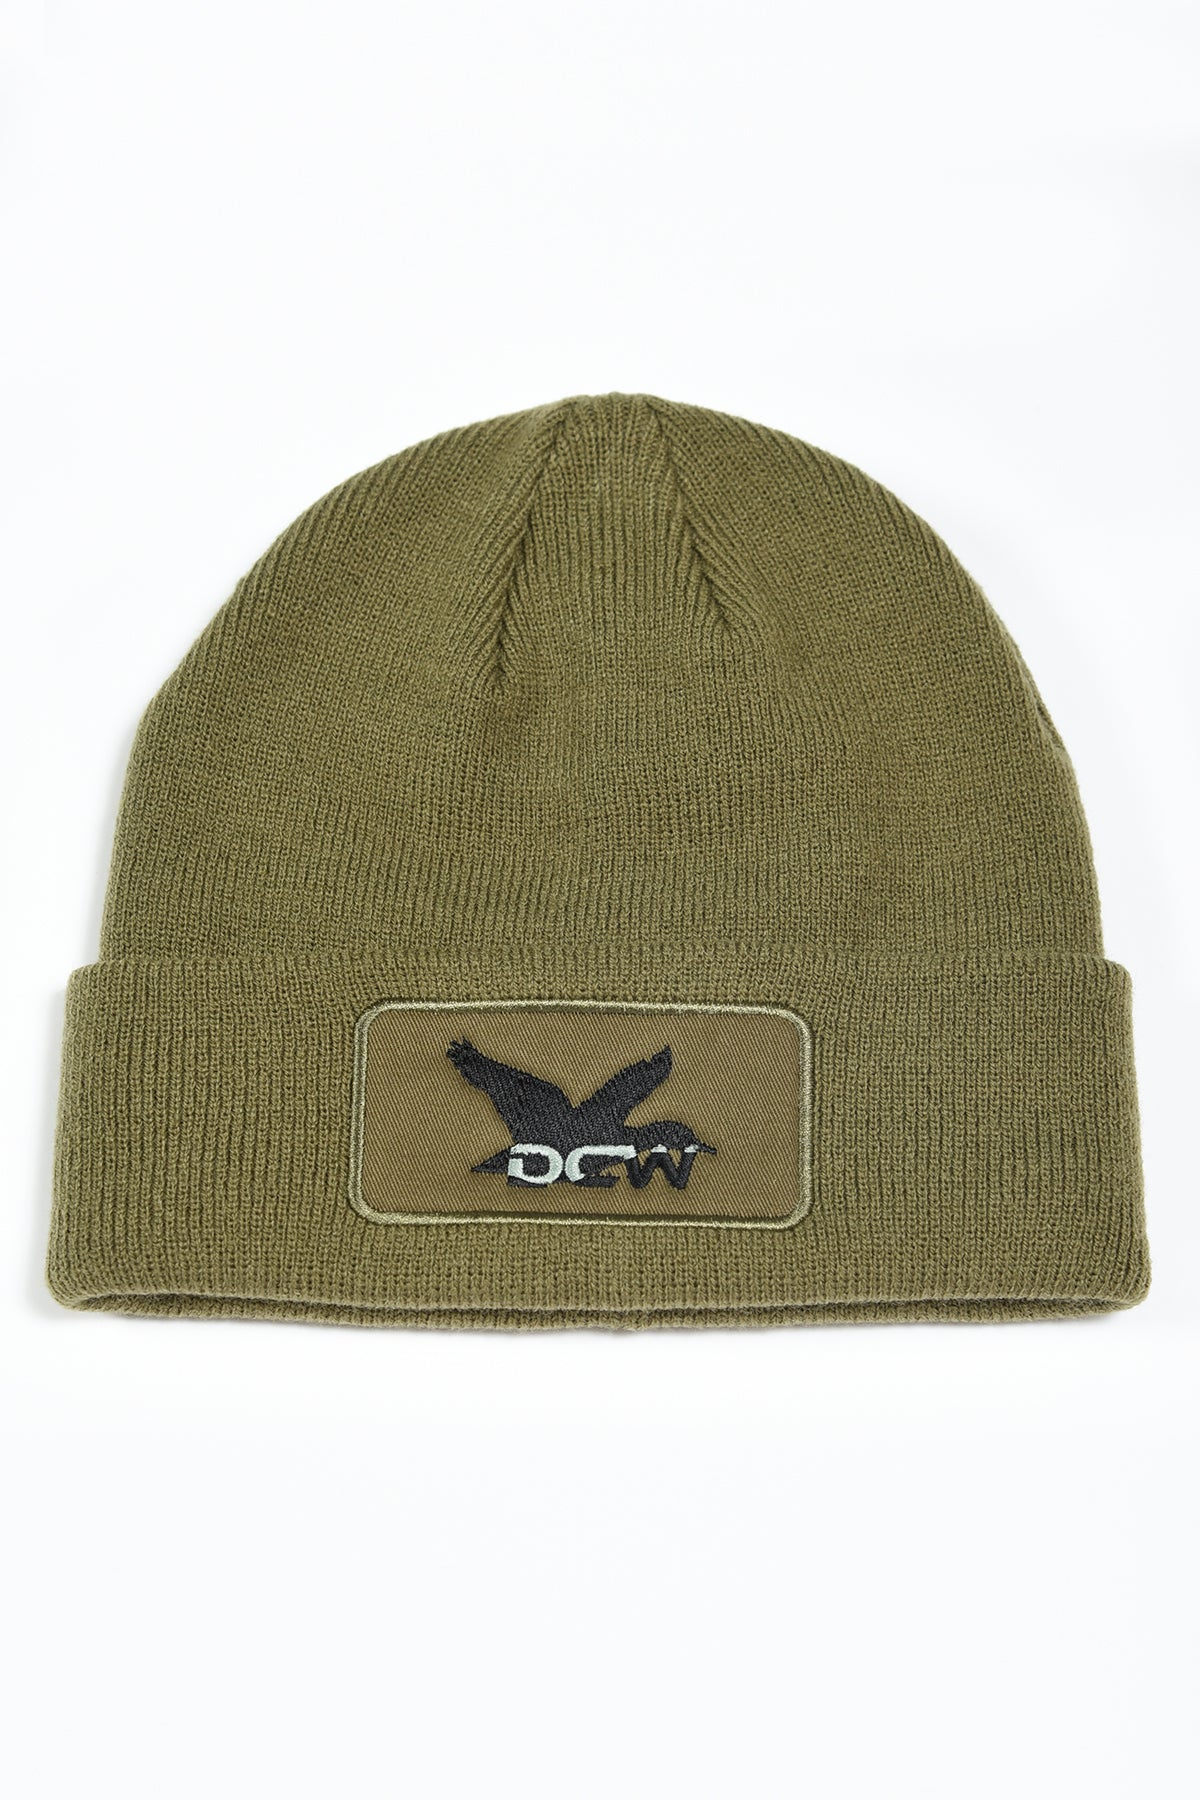 Dixie Creek Mallard Beanie - Military Green